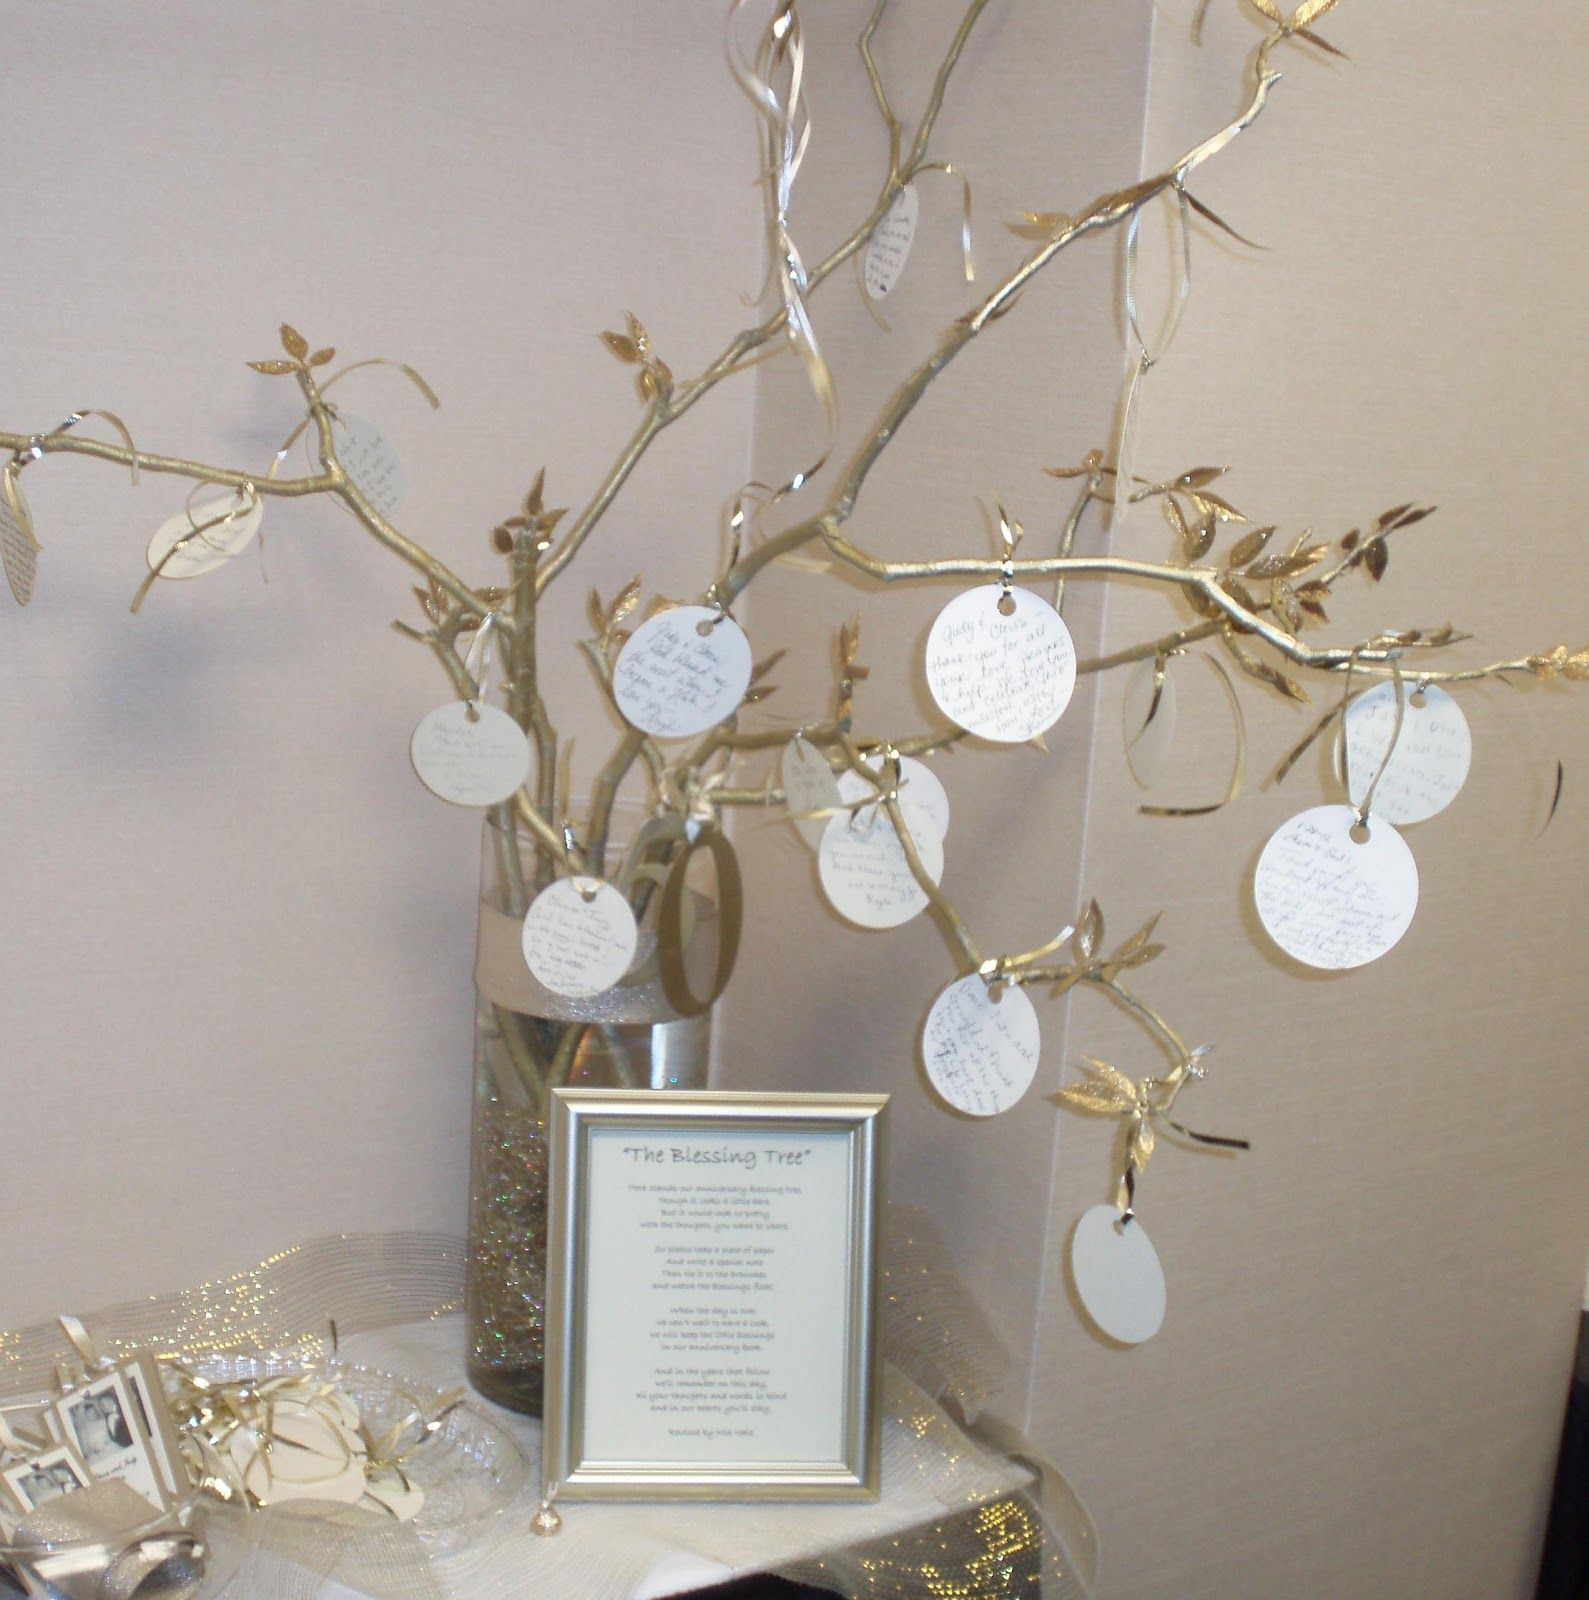 Wedding Table Decorations Ideas To Make: Distracted By Prayer: How To Make A Blessing Tree